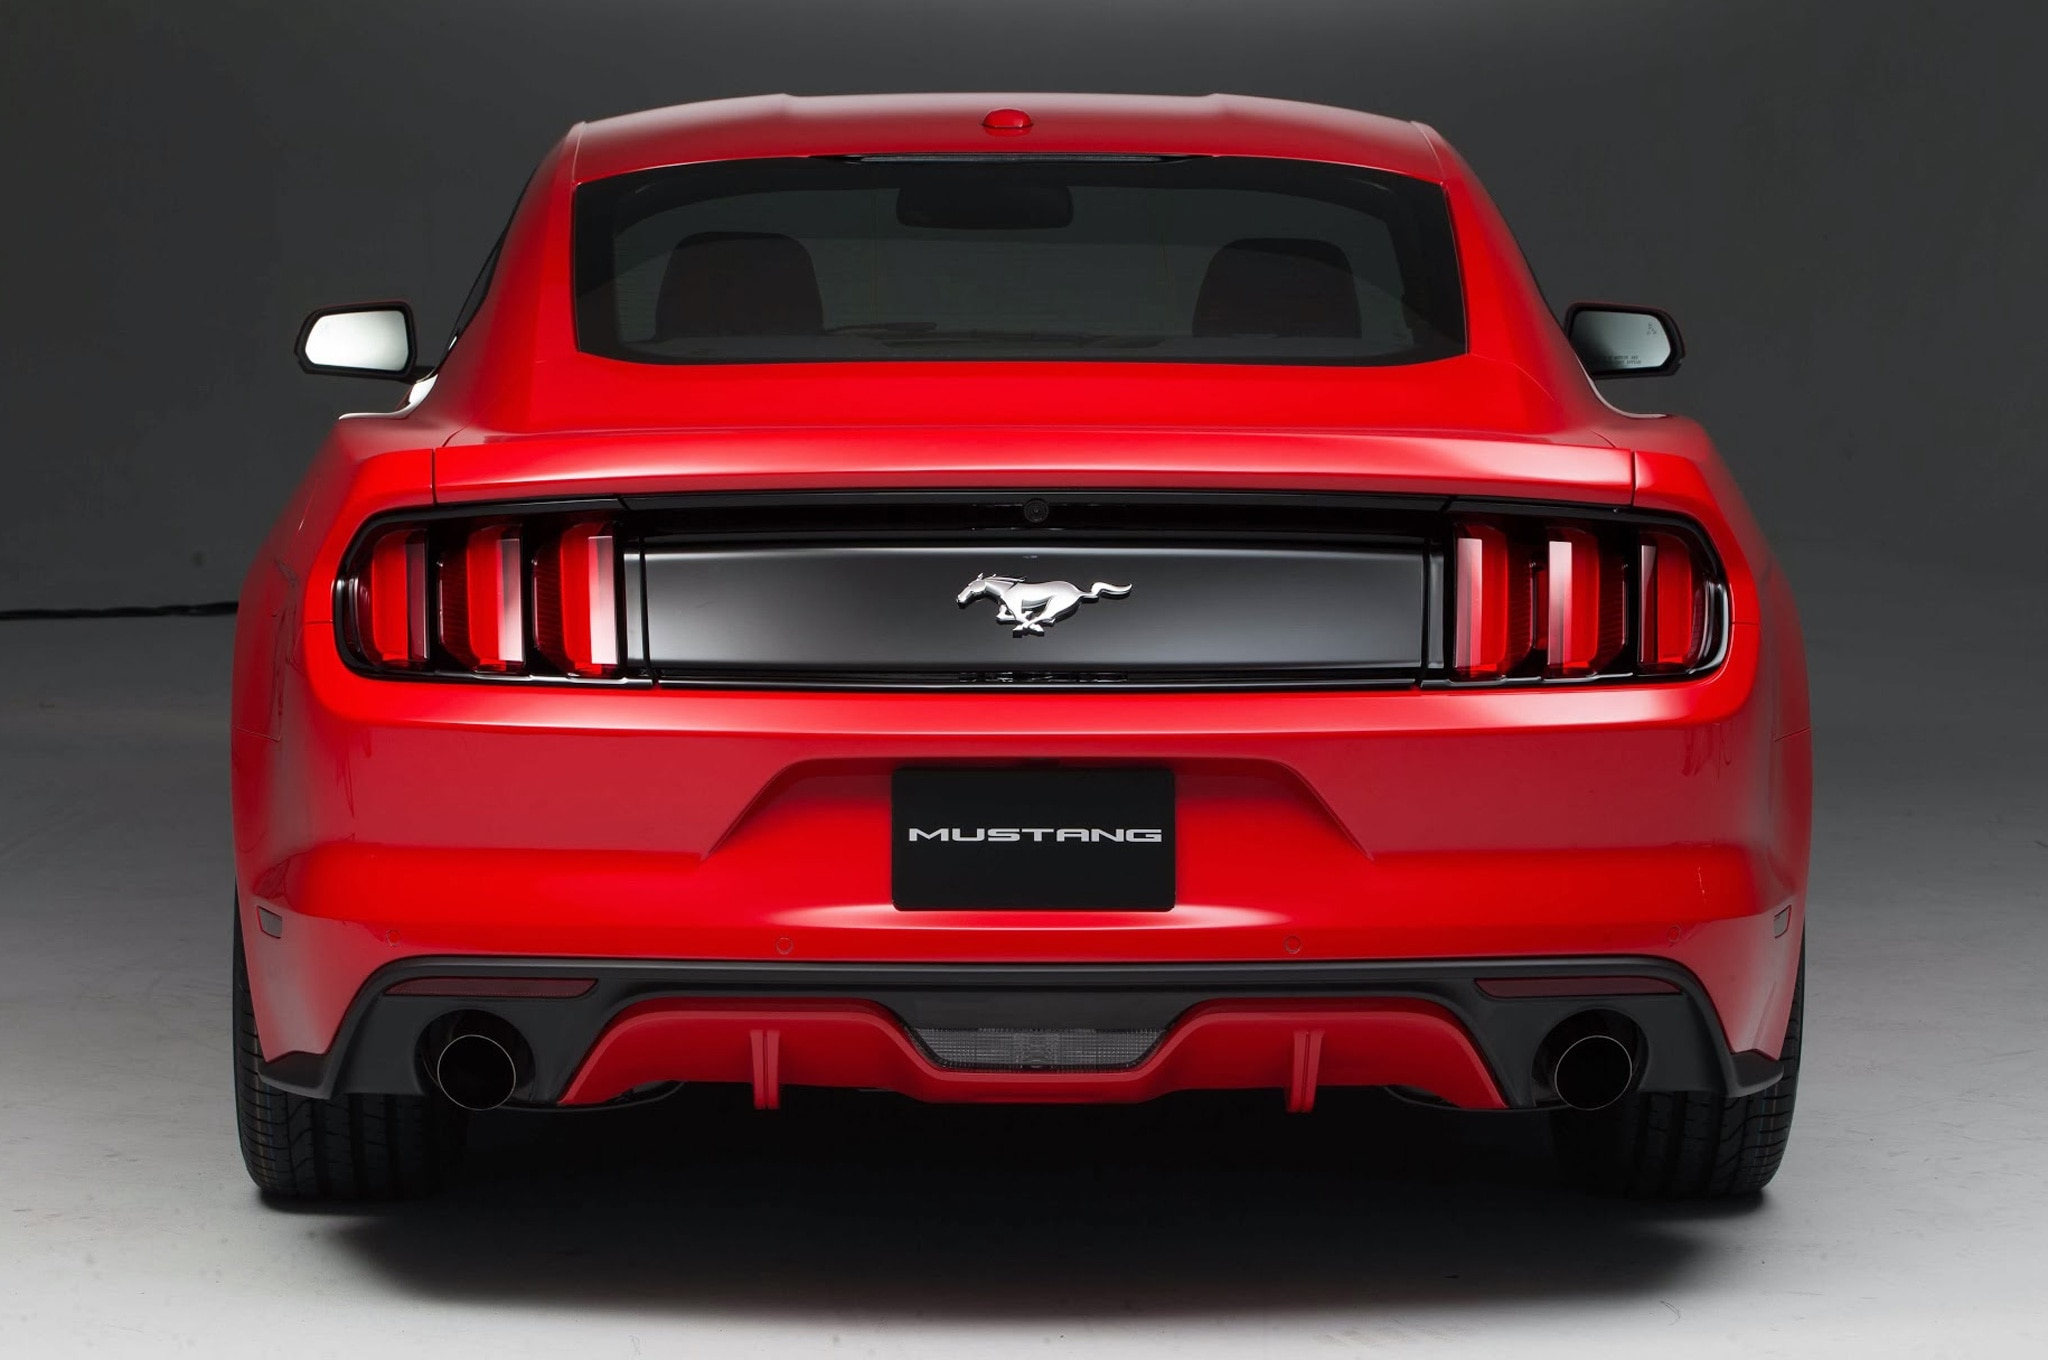 2015 Ford Mustang Rear View 2